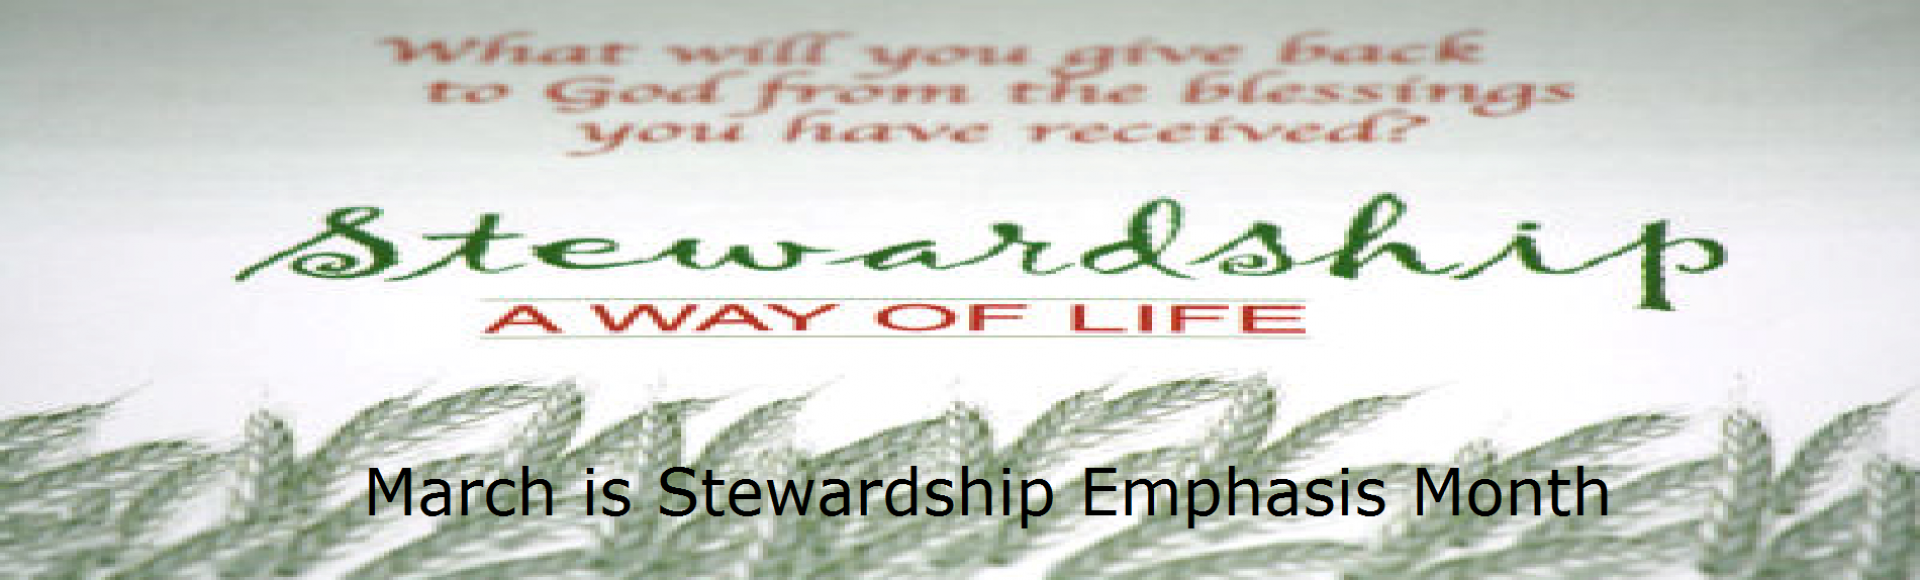 Stewardship Emphasis Month